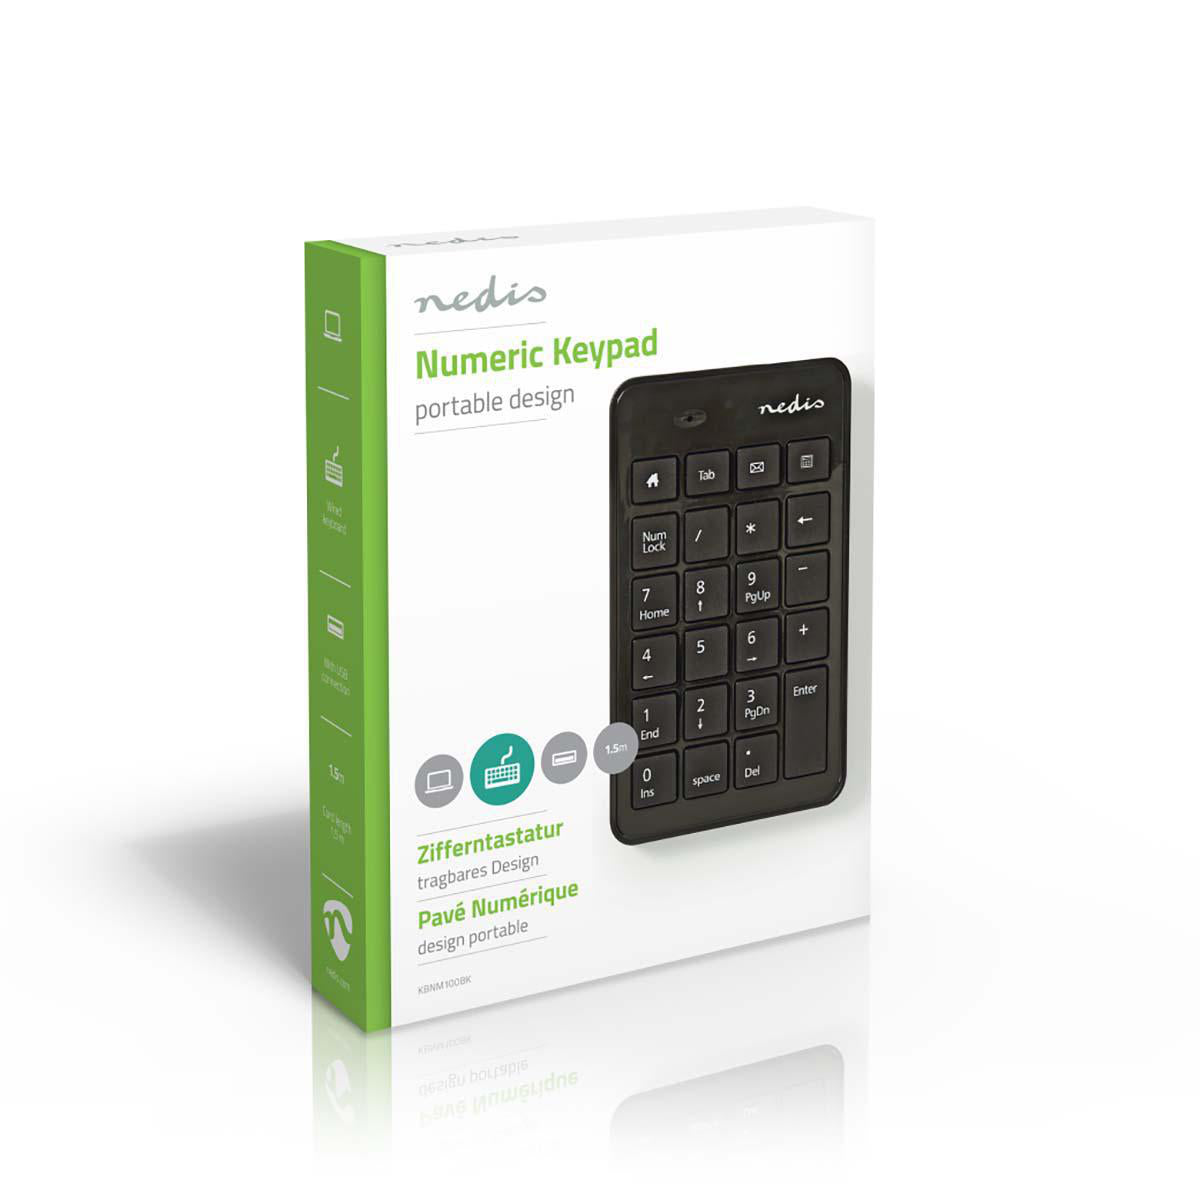 Nedis Wired Numeric Keypad, USB, Black | KBNM100BK